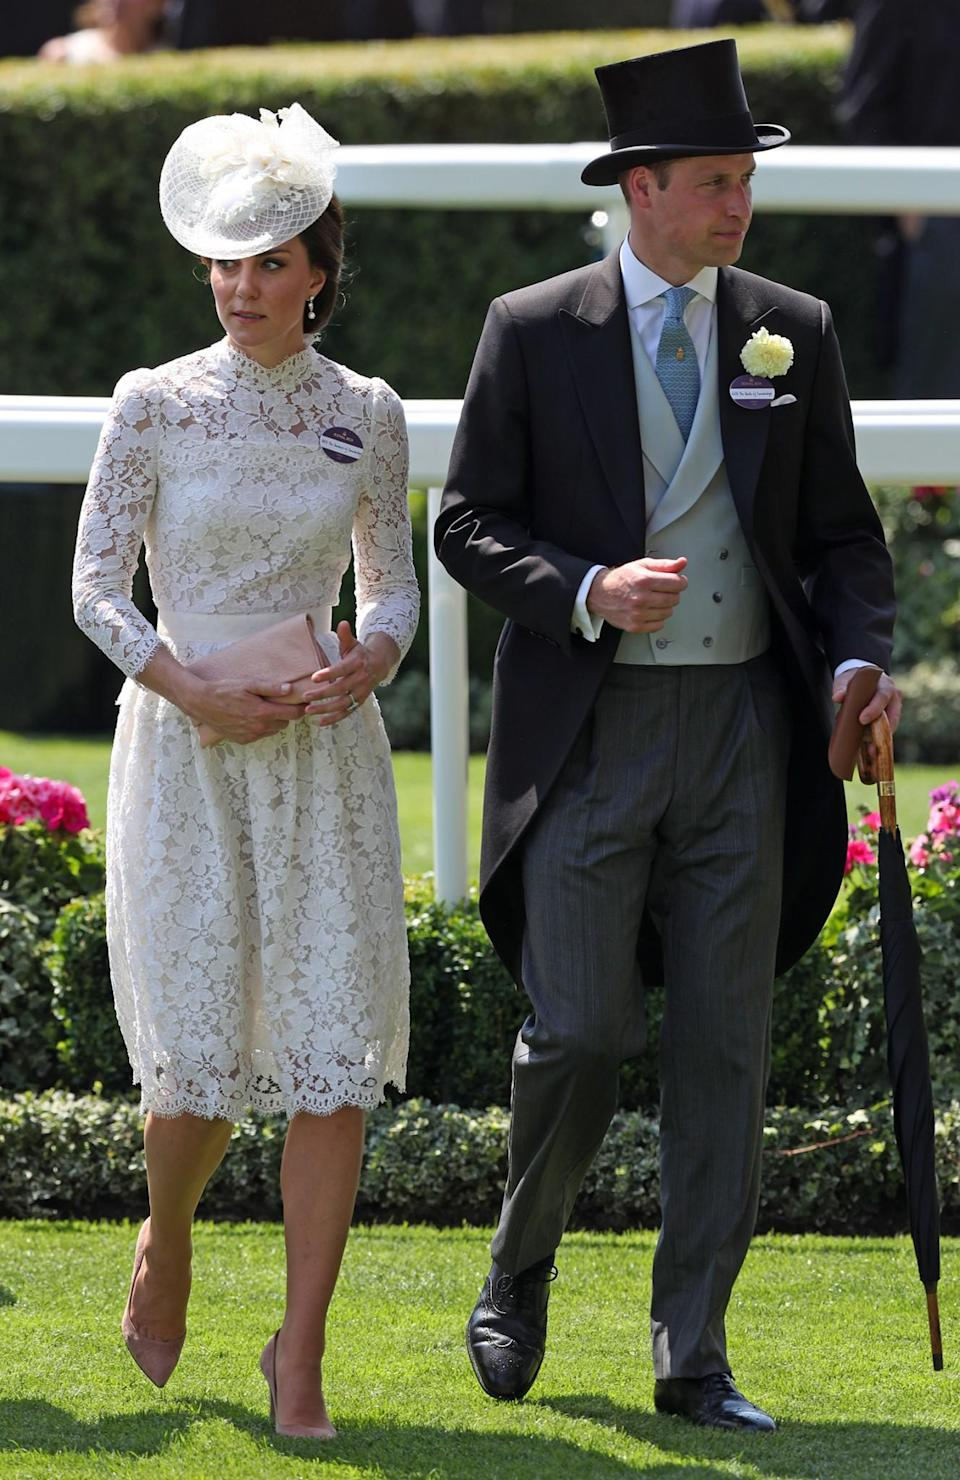 <p>Kate looked lovely in a lace, midi number by Alexander McQueen. The dress featured a high neck and was very similar to the Dolce & Gabanna outfit the mum-of-two wore in 2016 at the races. She wore her favourite Gianvito Rossi suede heels in the 'praline' colourway on her feet and carried a new clutch. Prince William opted to wear a tri-tone outfit, including a black jacket, grey trousers and light grey waist coat.<br><em>[Photo: PA]</em> </p>